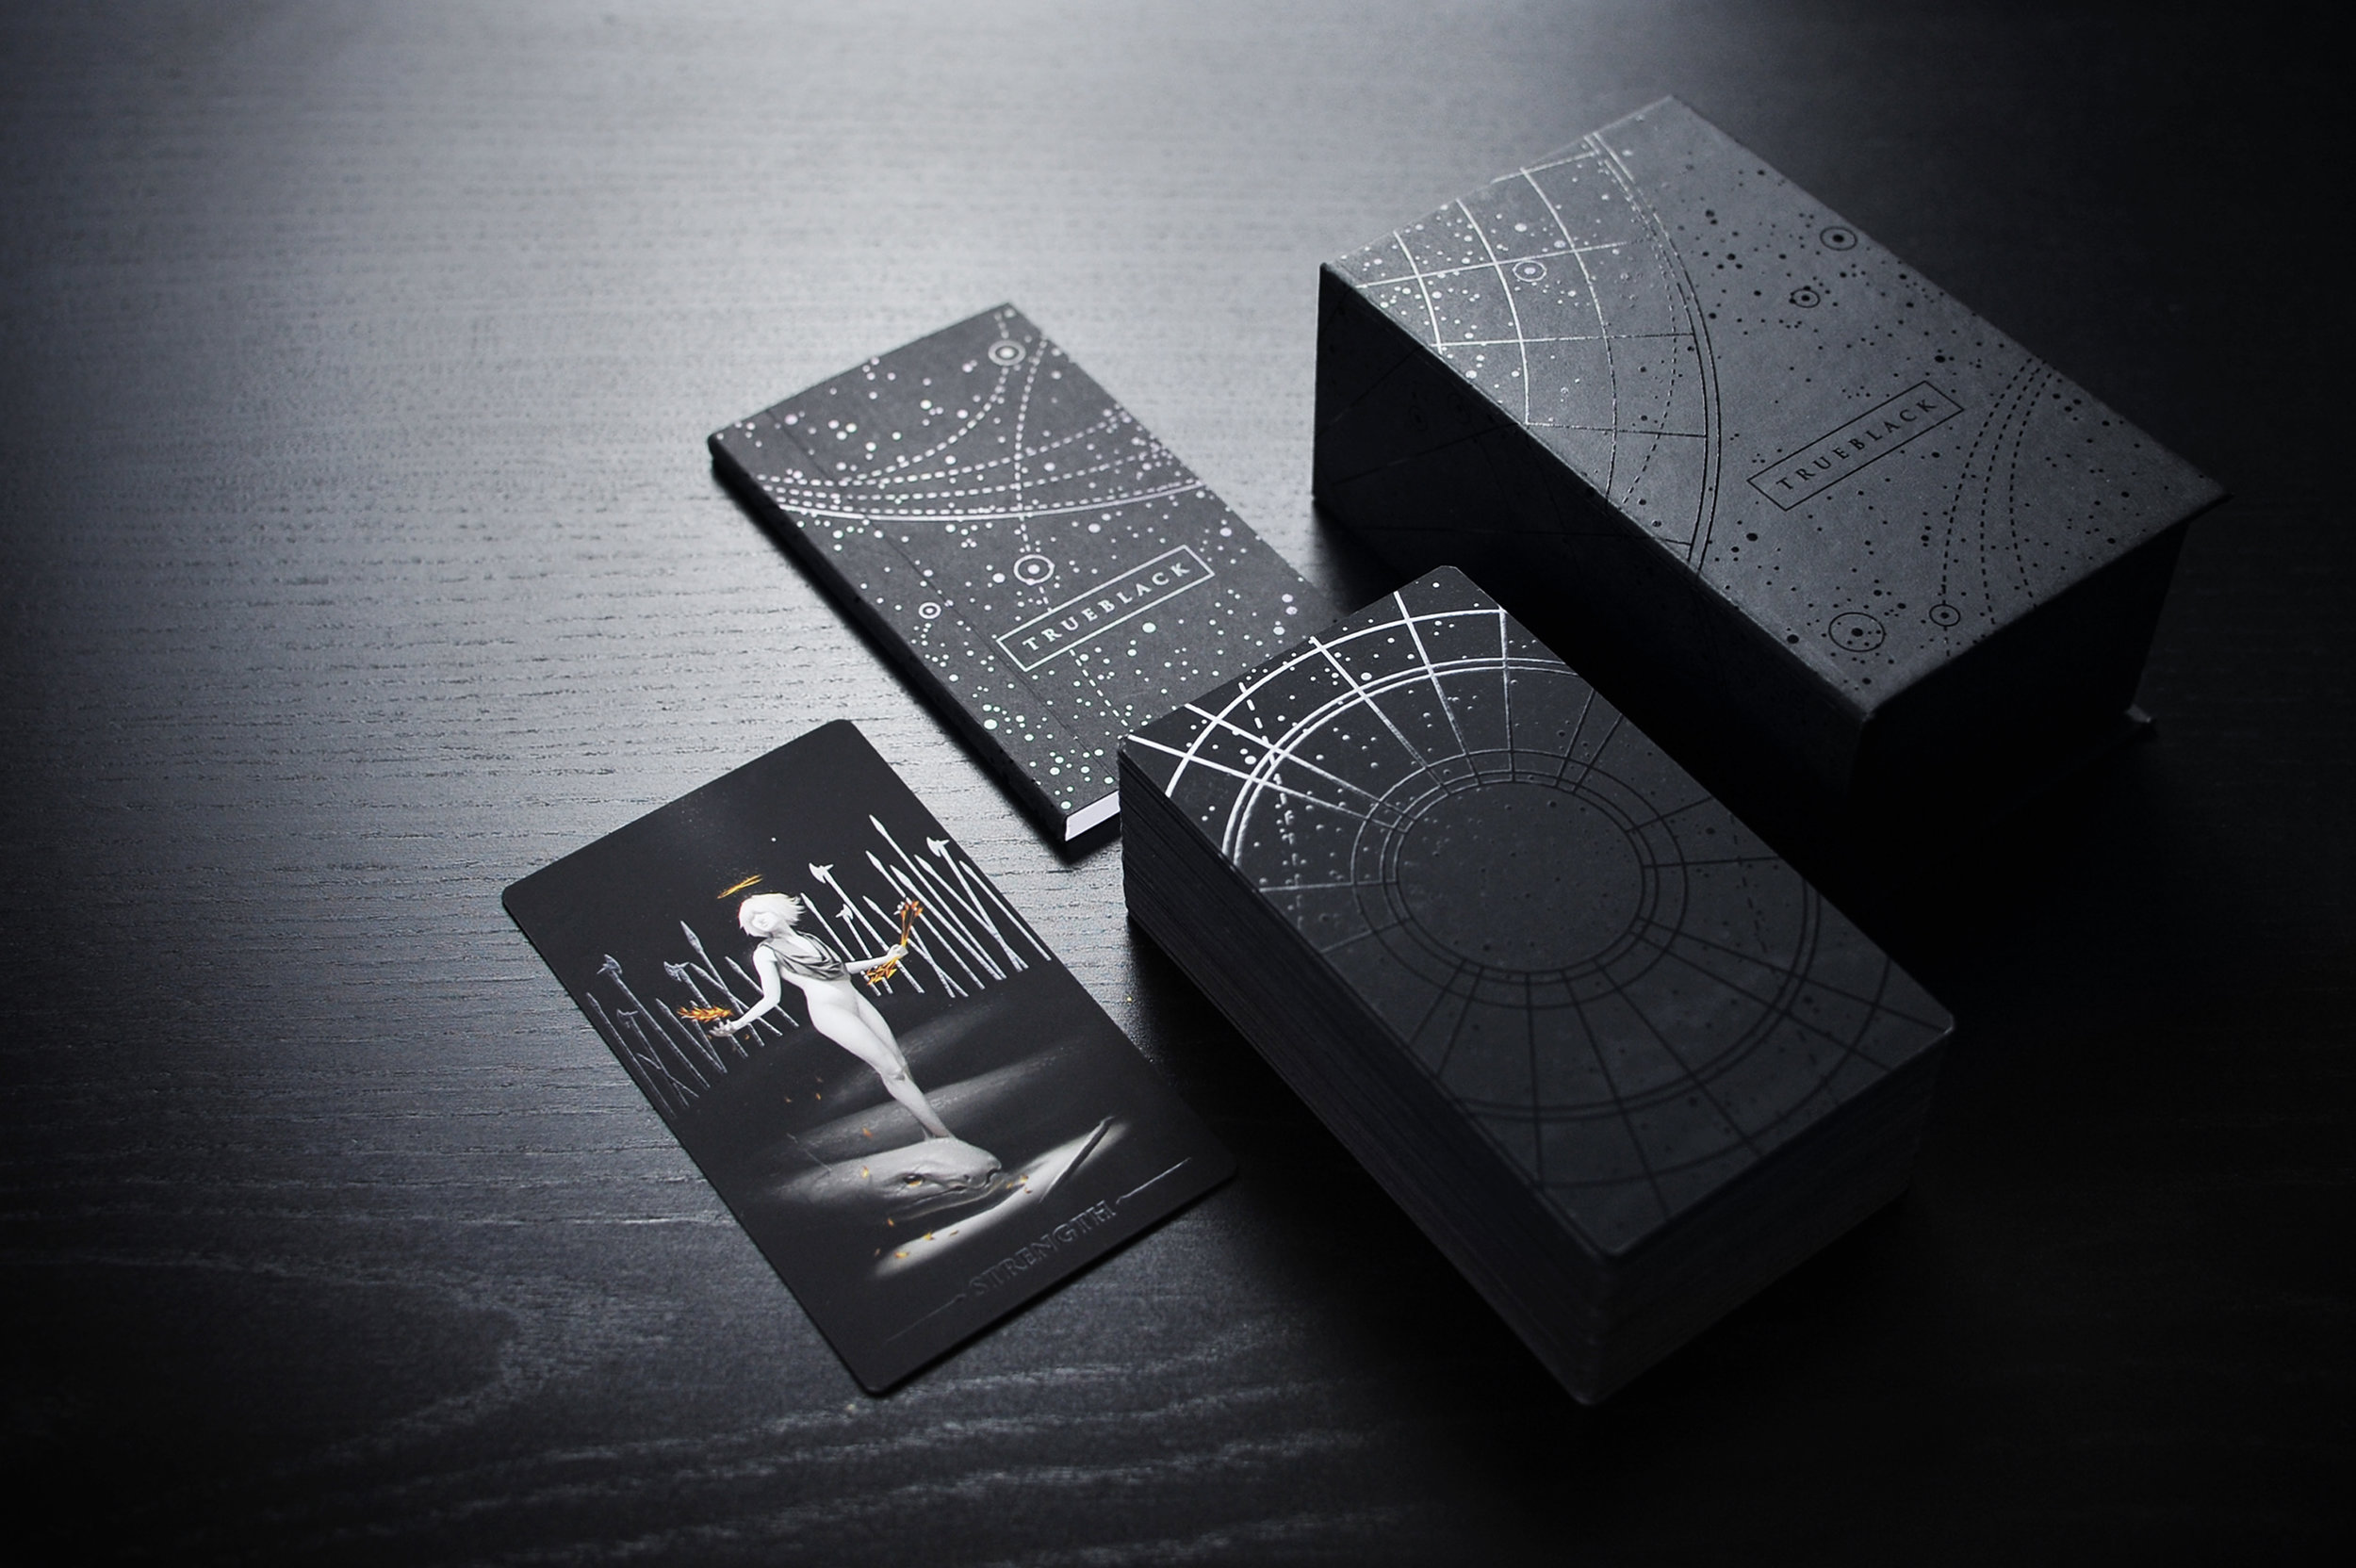 A TIMELESSTAROT - True Black was conceived as a timeless tarot.Every detail has been carefully chosen to embody an exacting perfection for the new goldstandard in tarot decks.Truly a cut above.